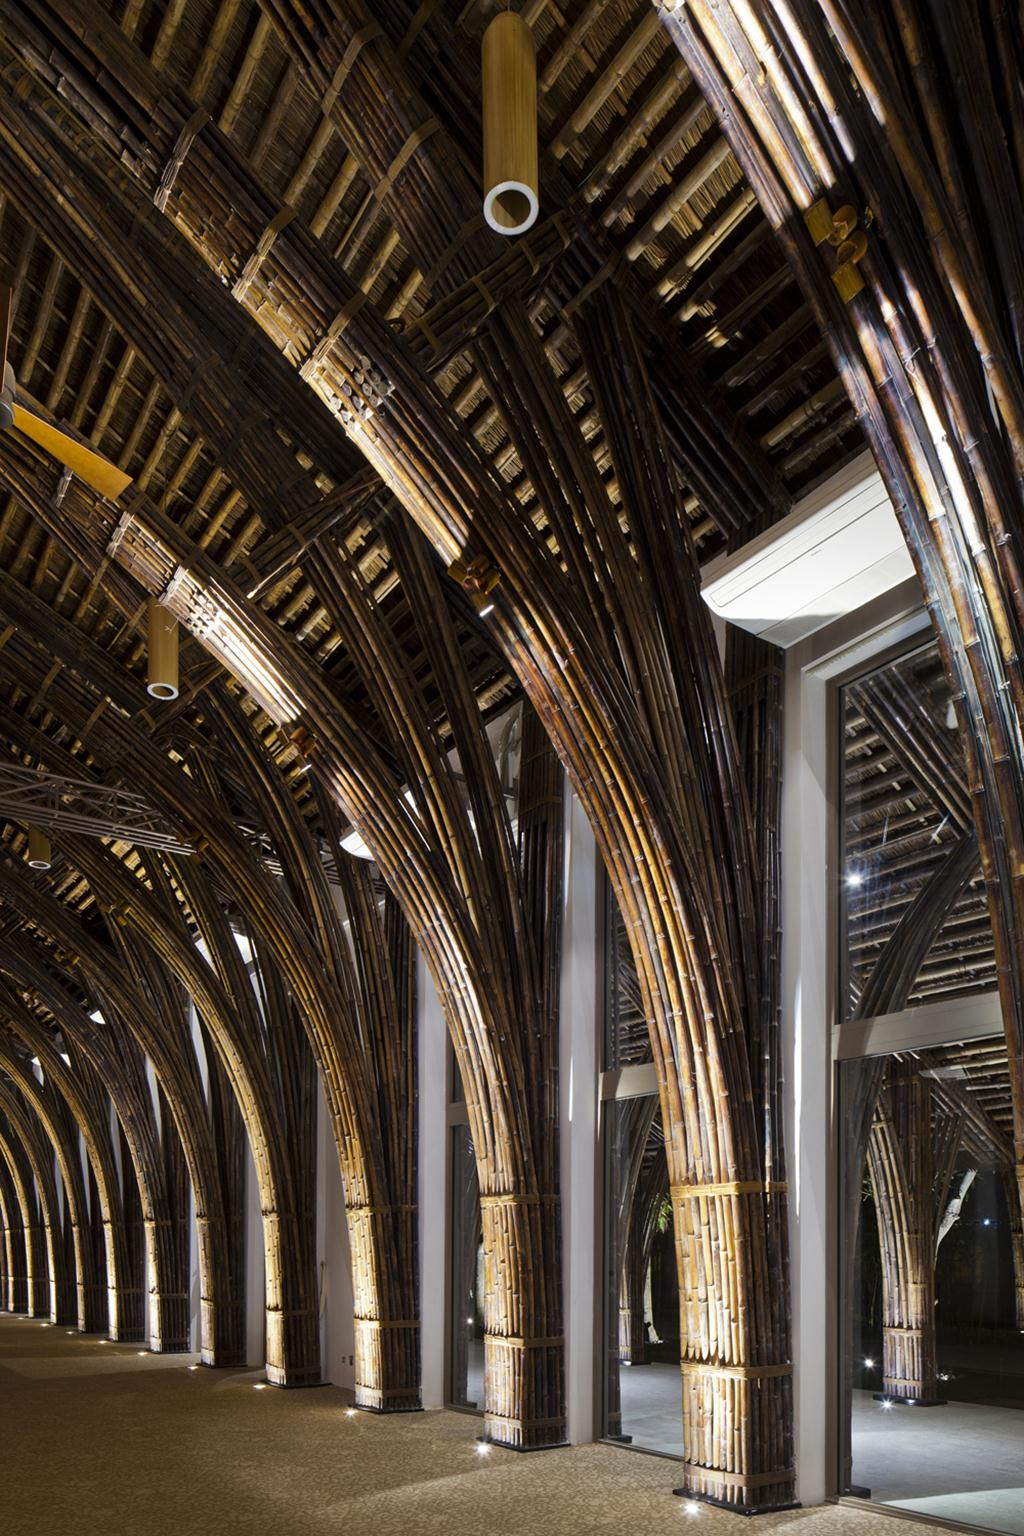 13-bamboo-structure-detail-Copy.jpg